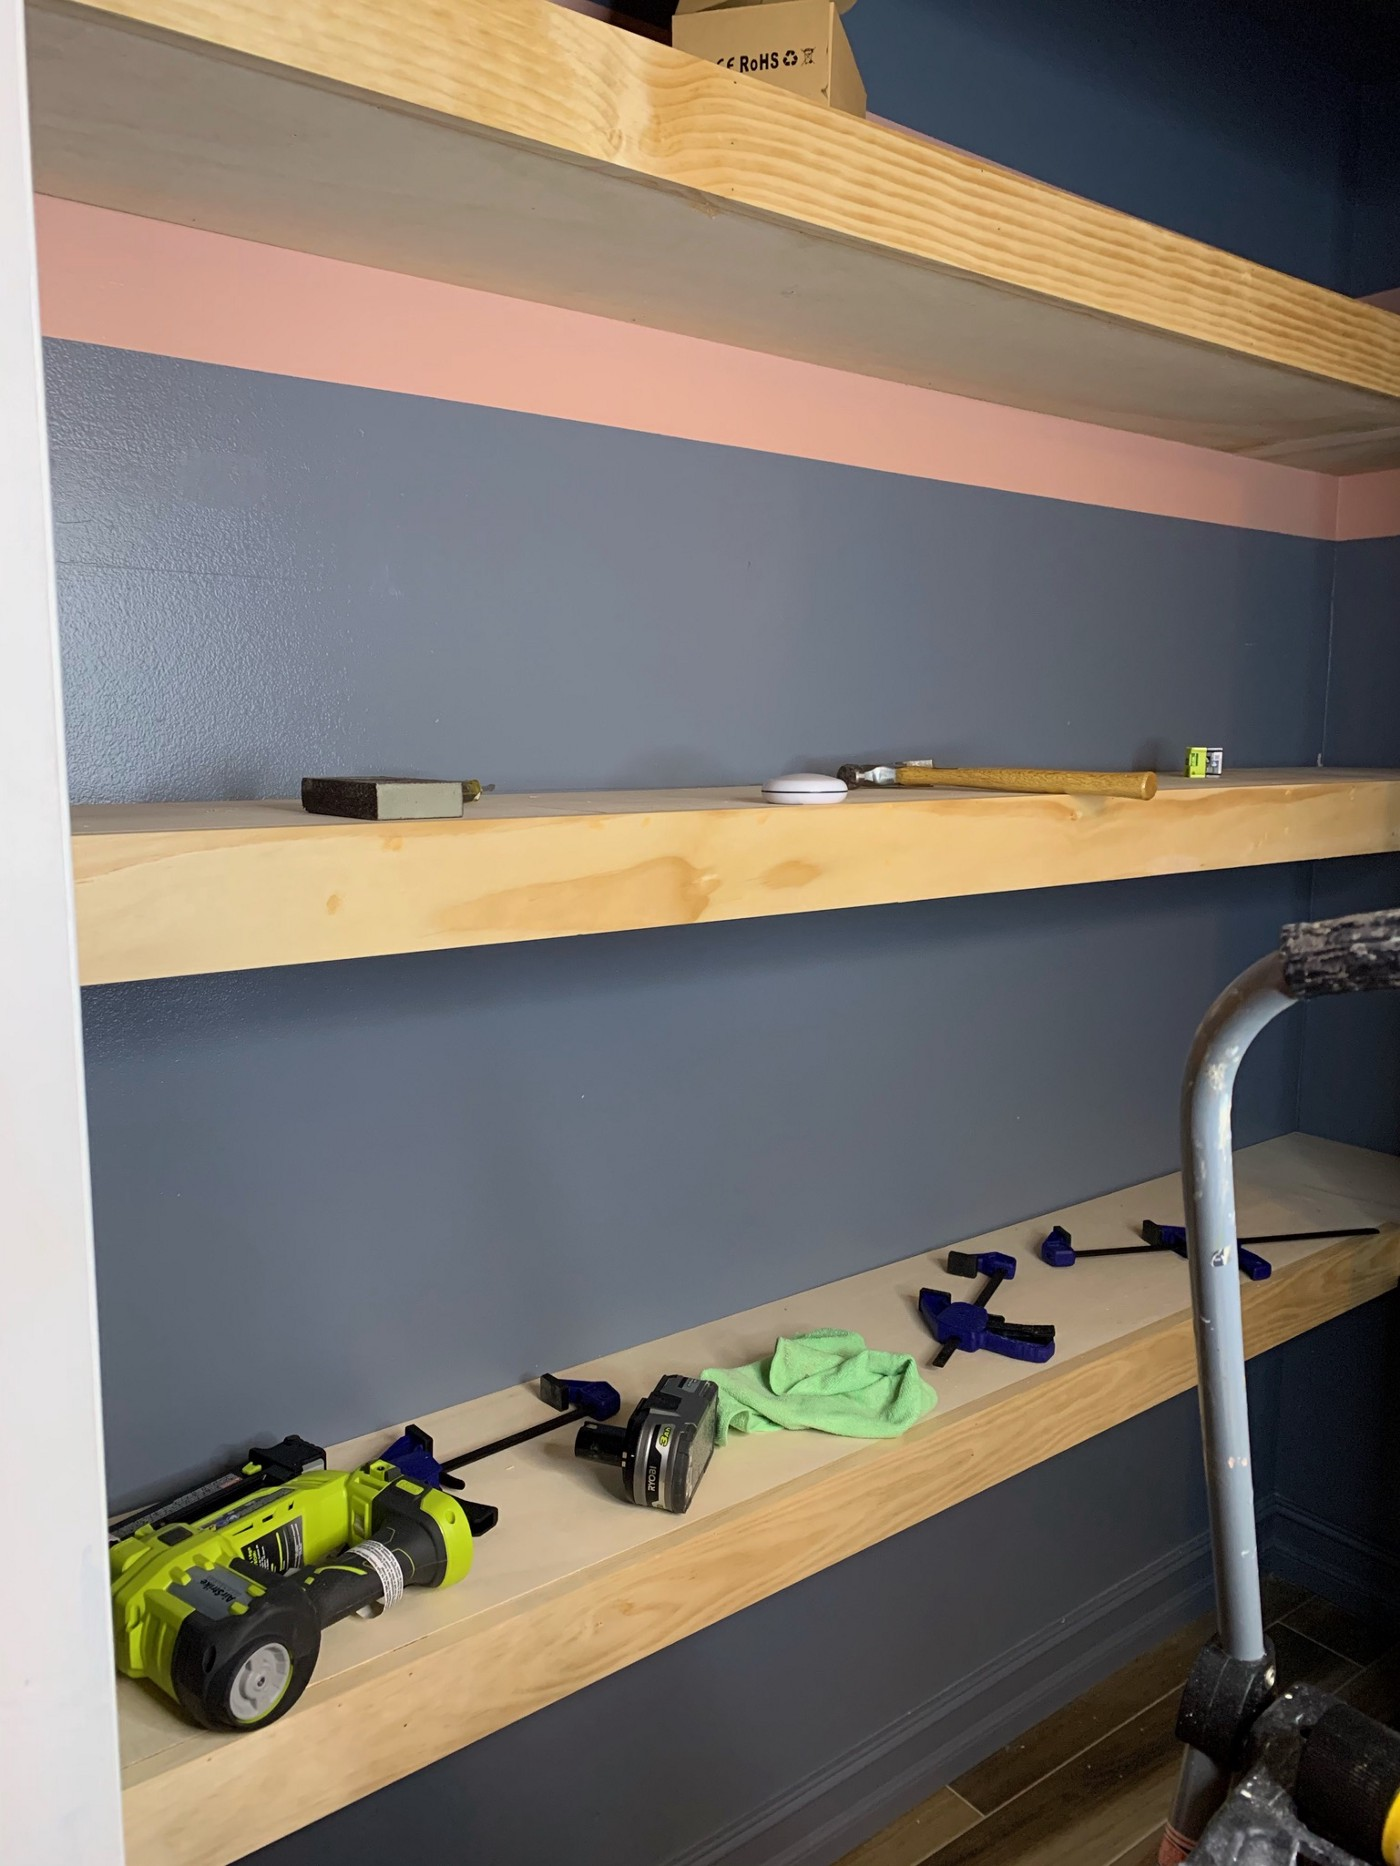 Inside the closet while it was being build. There are two shelves. The top shelf has a hammer on it and some misc objects. The lower shelf has clamps, a Ryobi brad nailer and a battery. The wall is a blue/gray with the top part of the wall painted pink. The floor is a wood look tile.